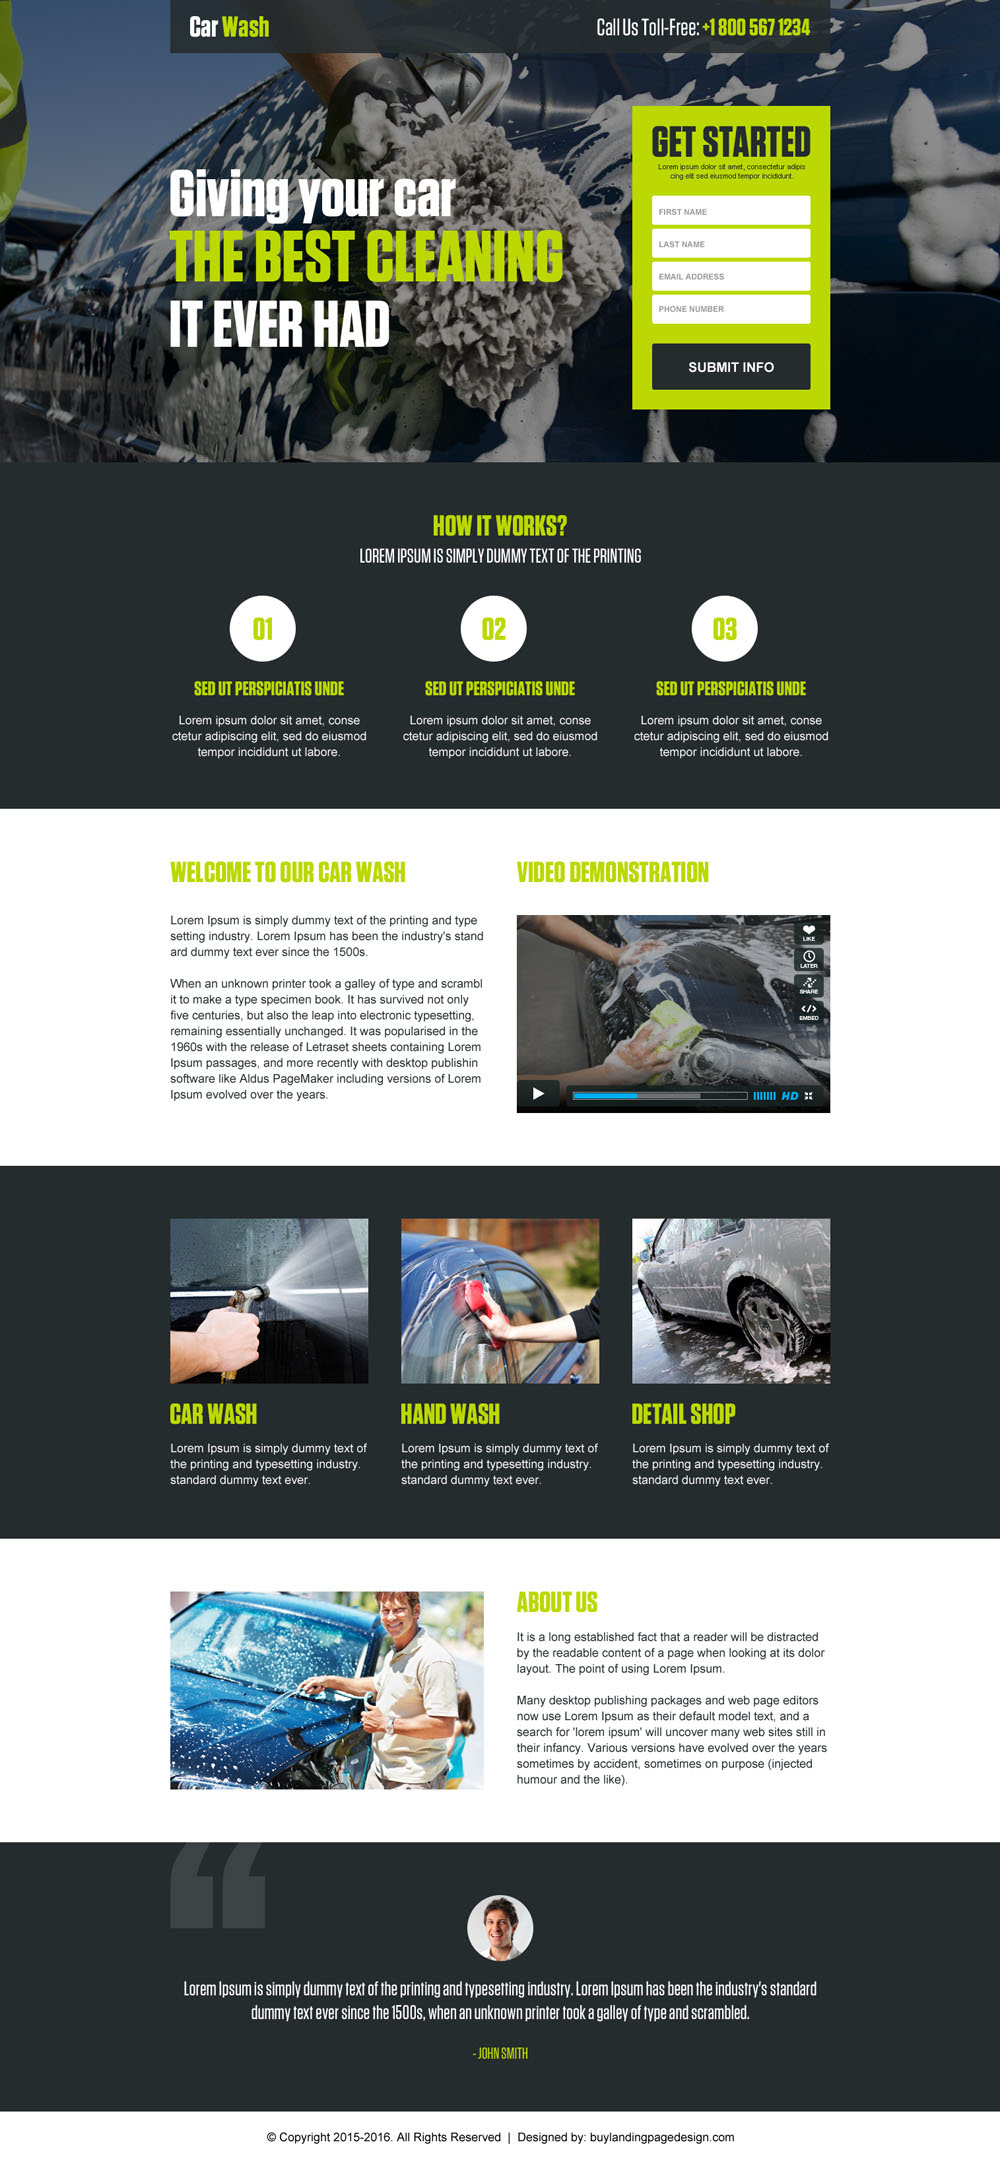 best-car-wash-service-lead-generation-landing-page-design-001